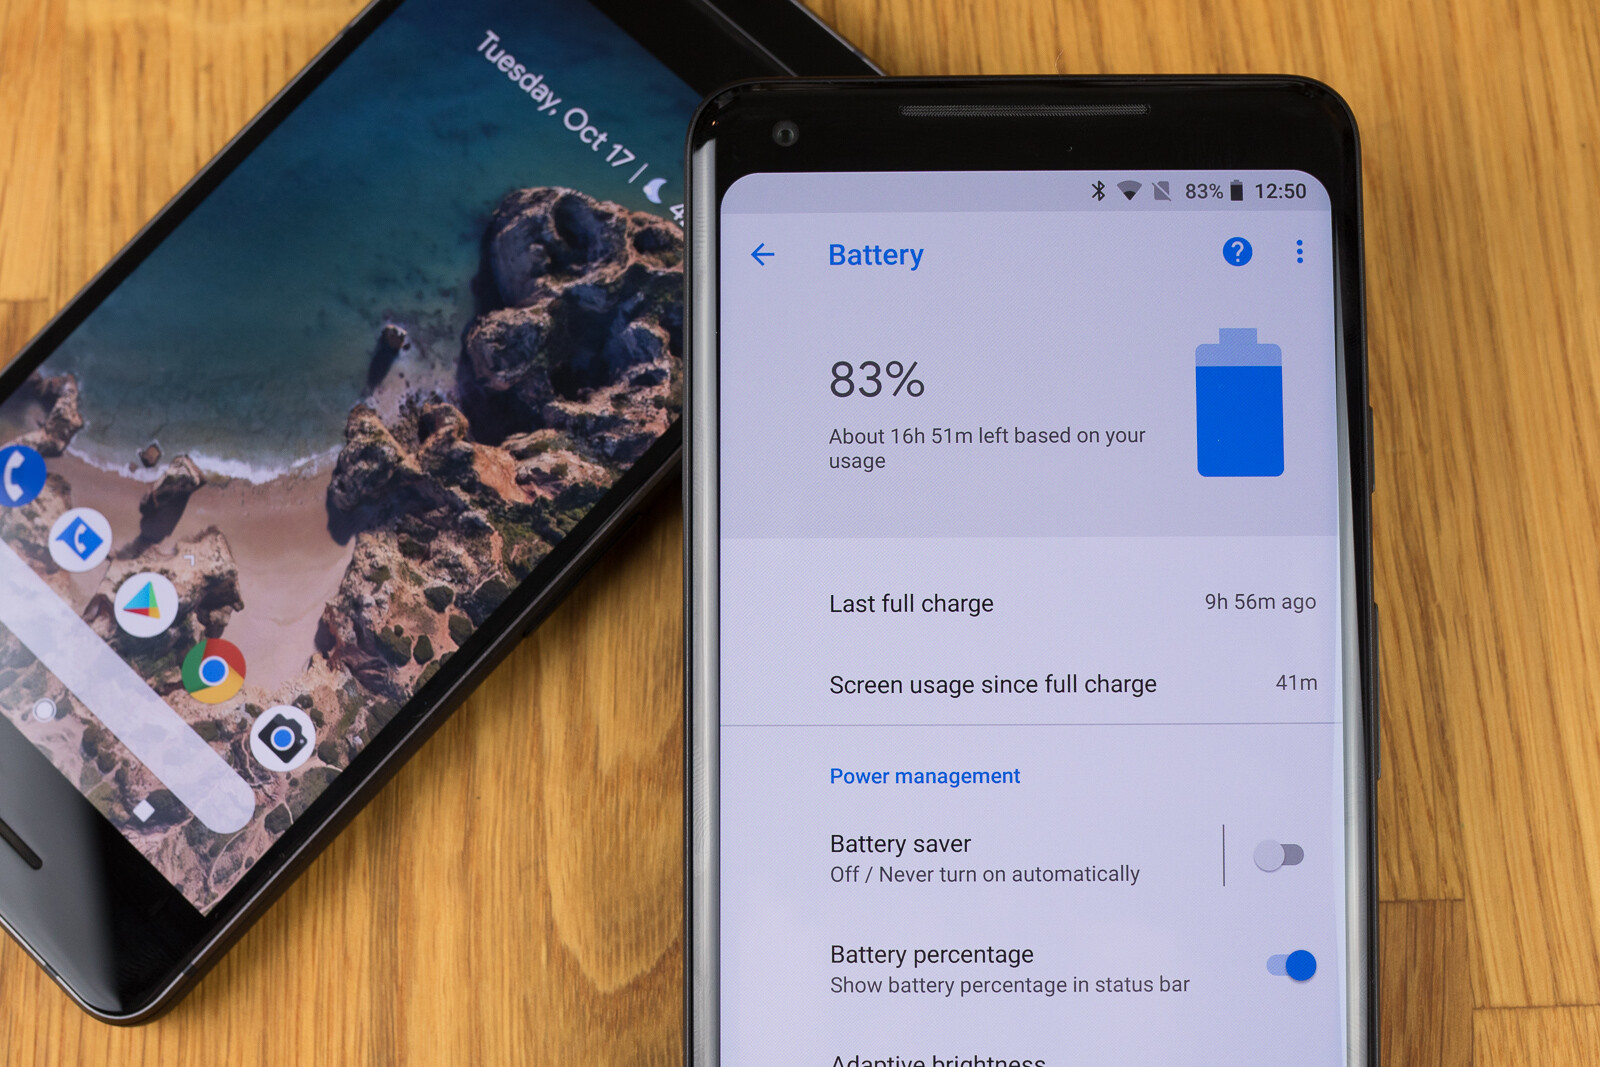 Google: Here's how we predict battery life based on your usage patterns